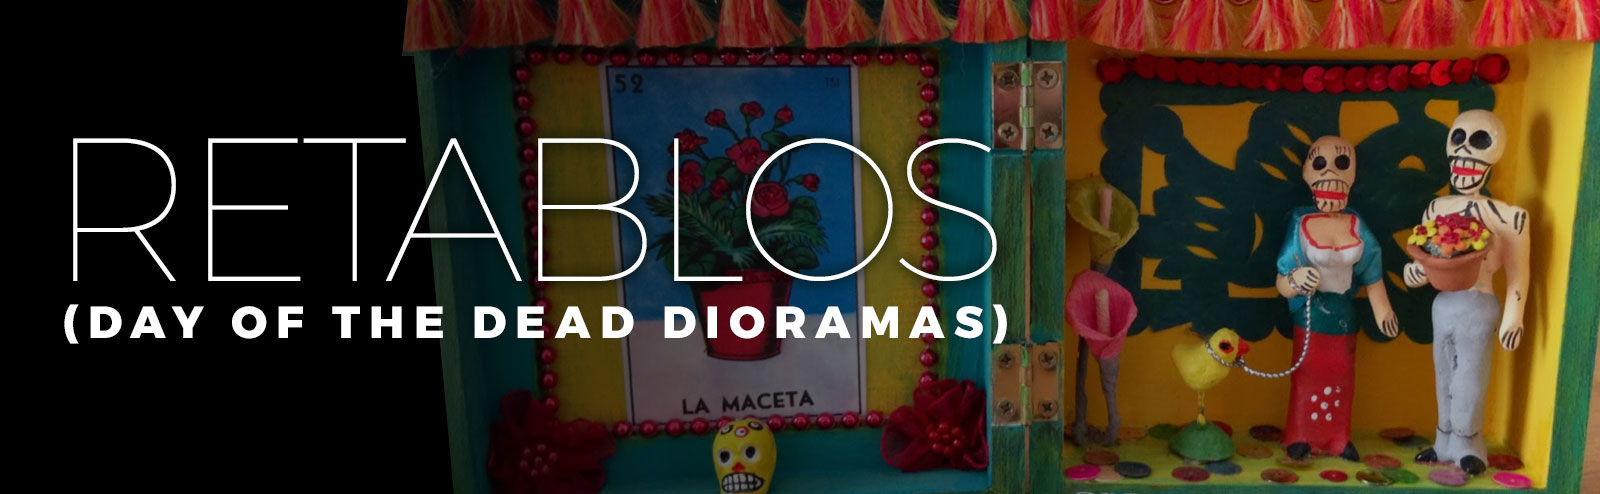 October 31 - Day of the Dead Retablos!